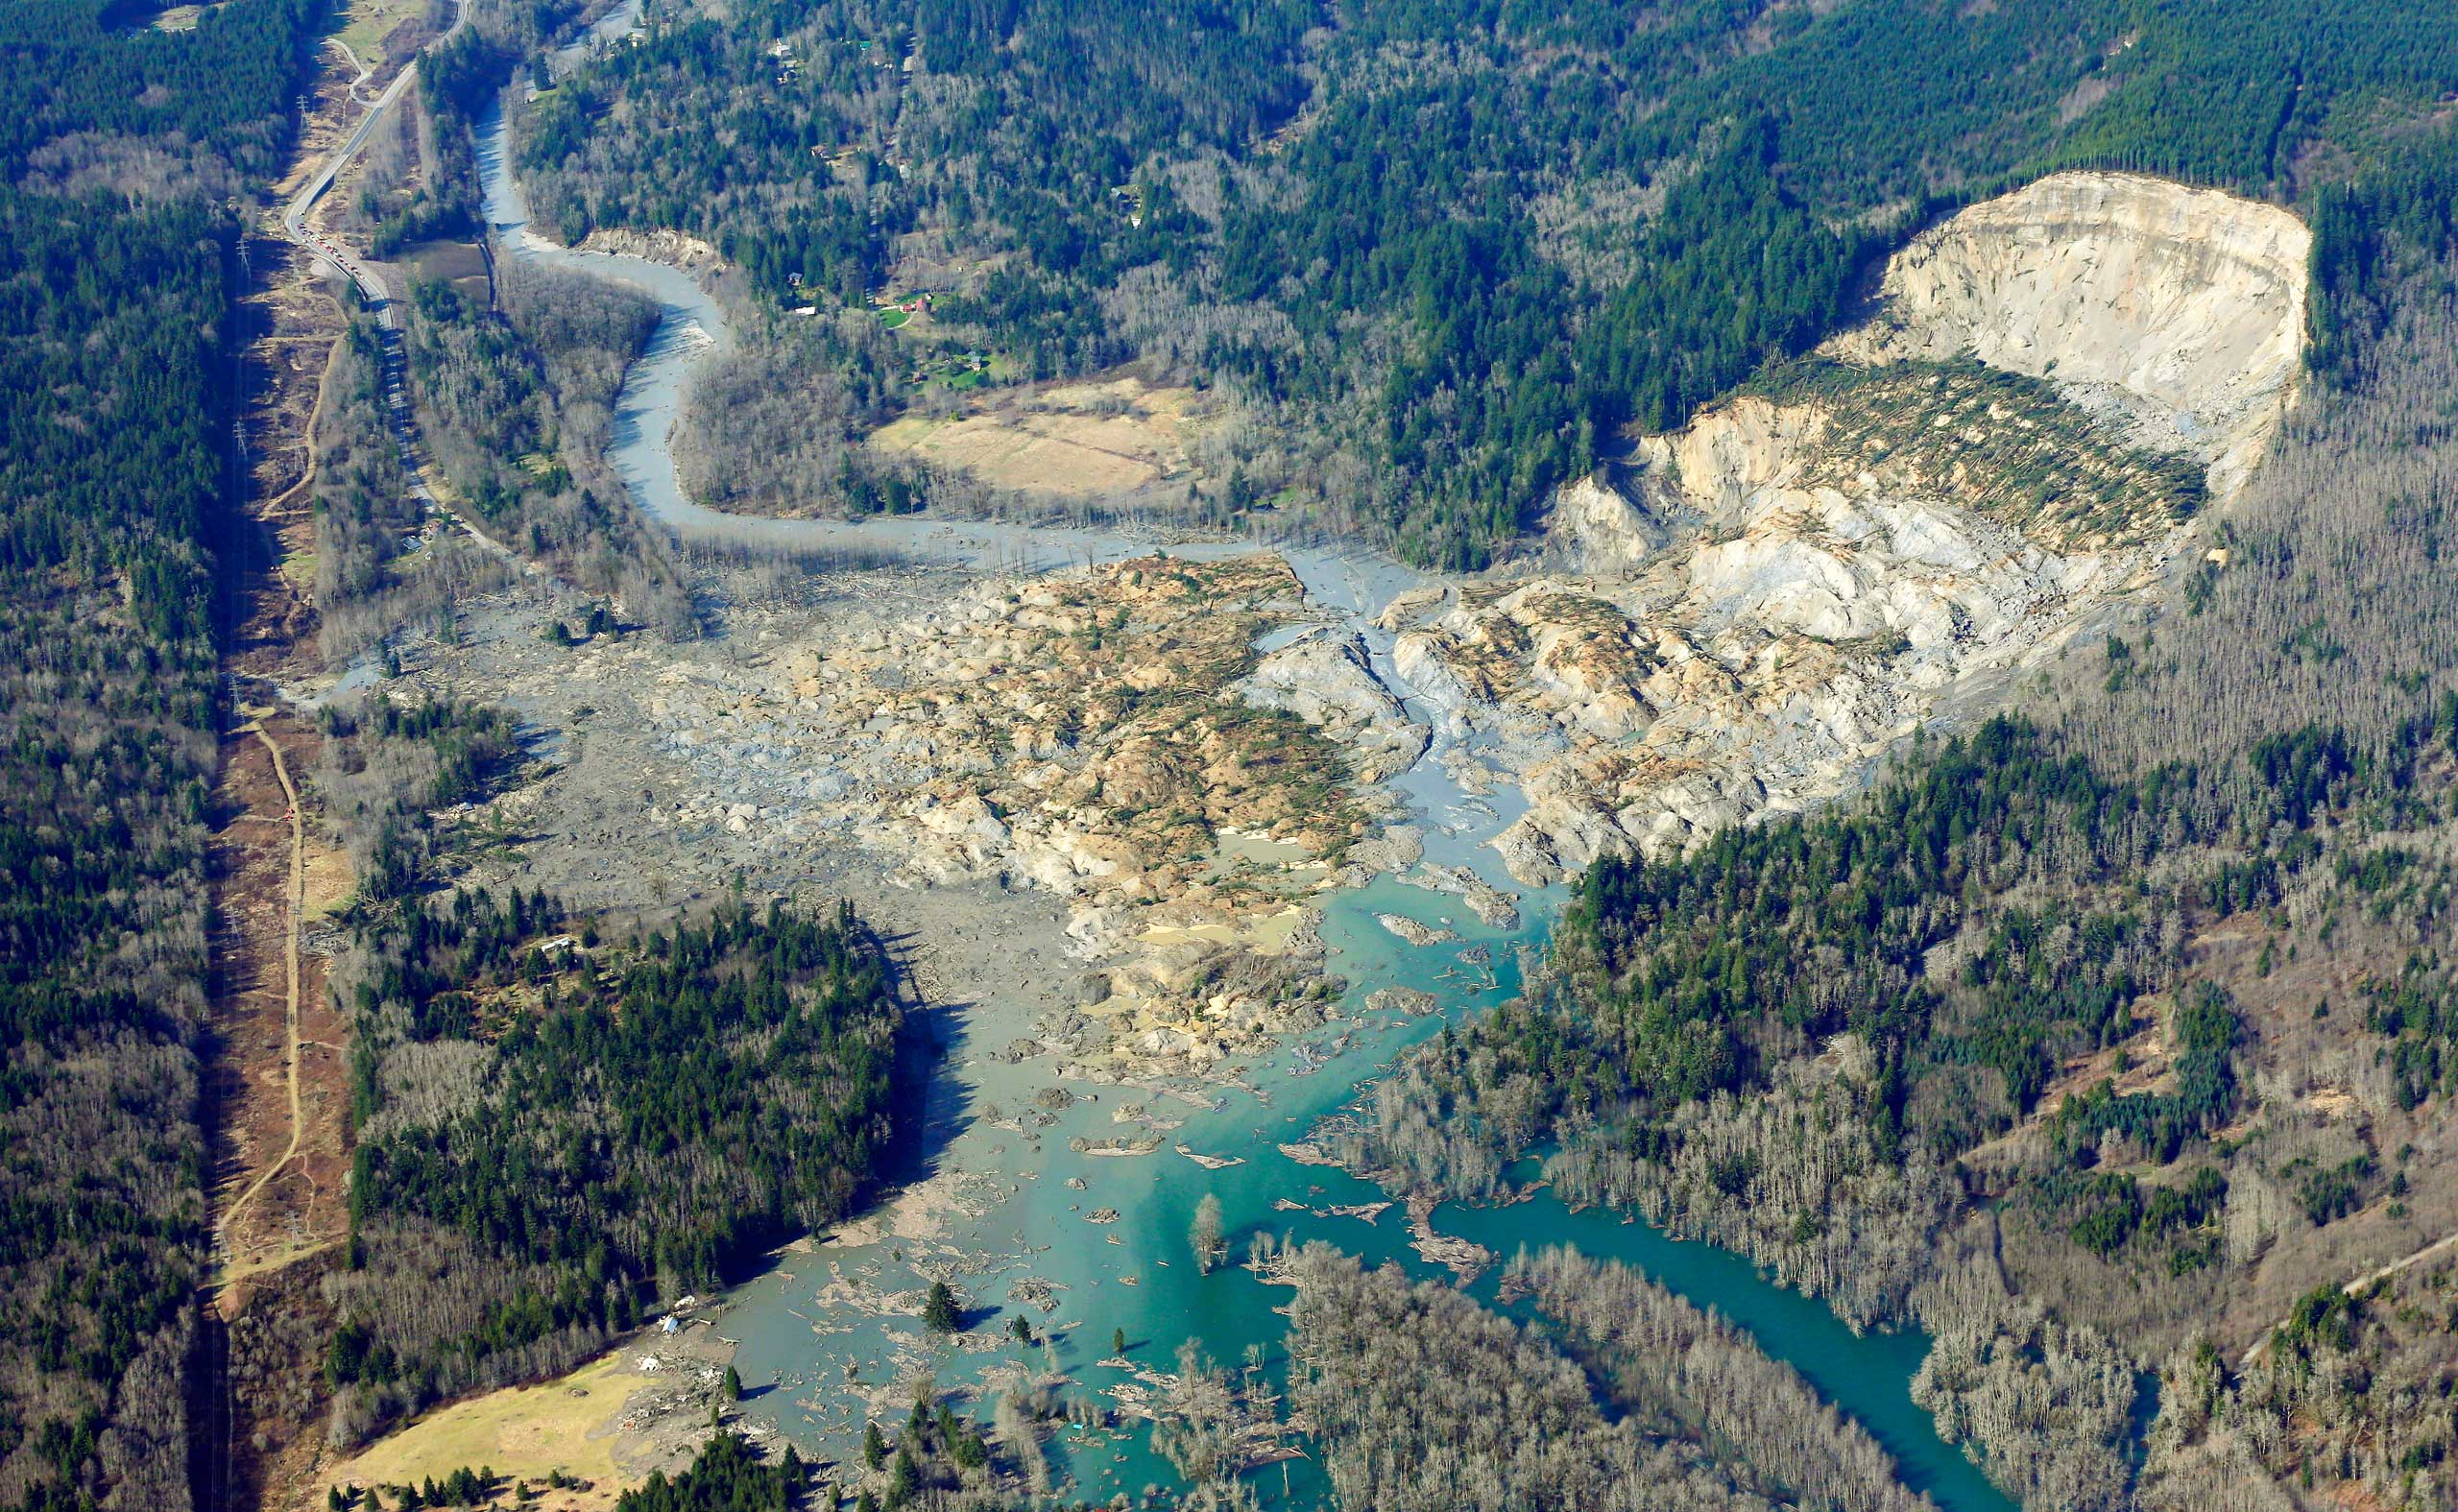 <b>Washington Mudslide</b> A massive mudslide killed at least eight people and left dozens missing in Arlington, Wash., March 24, 2014.